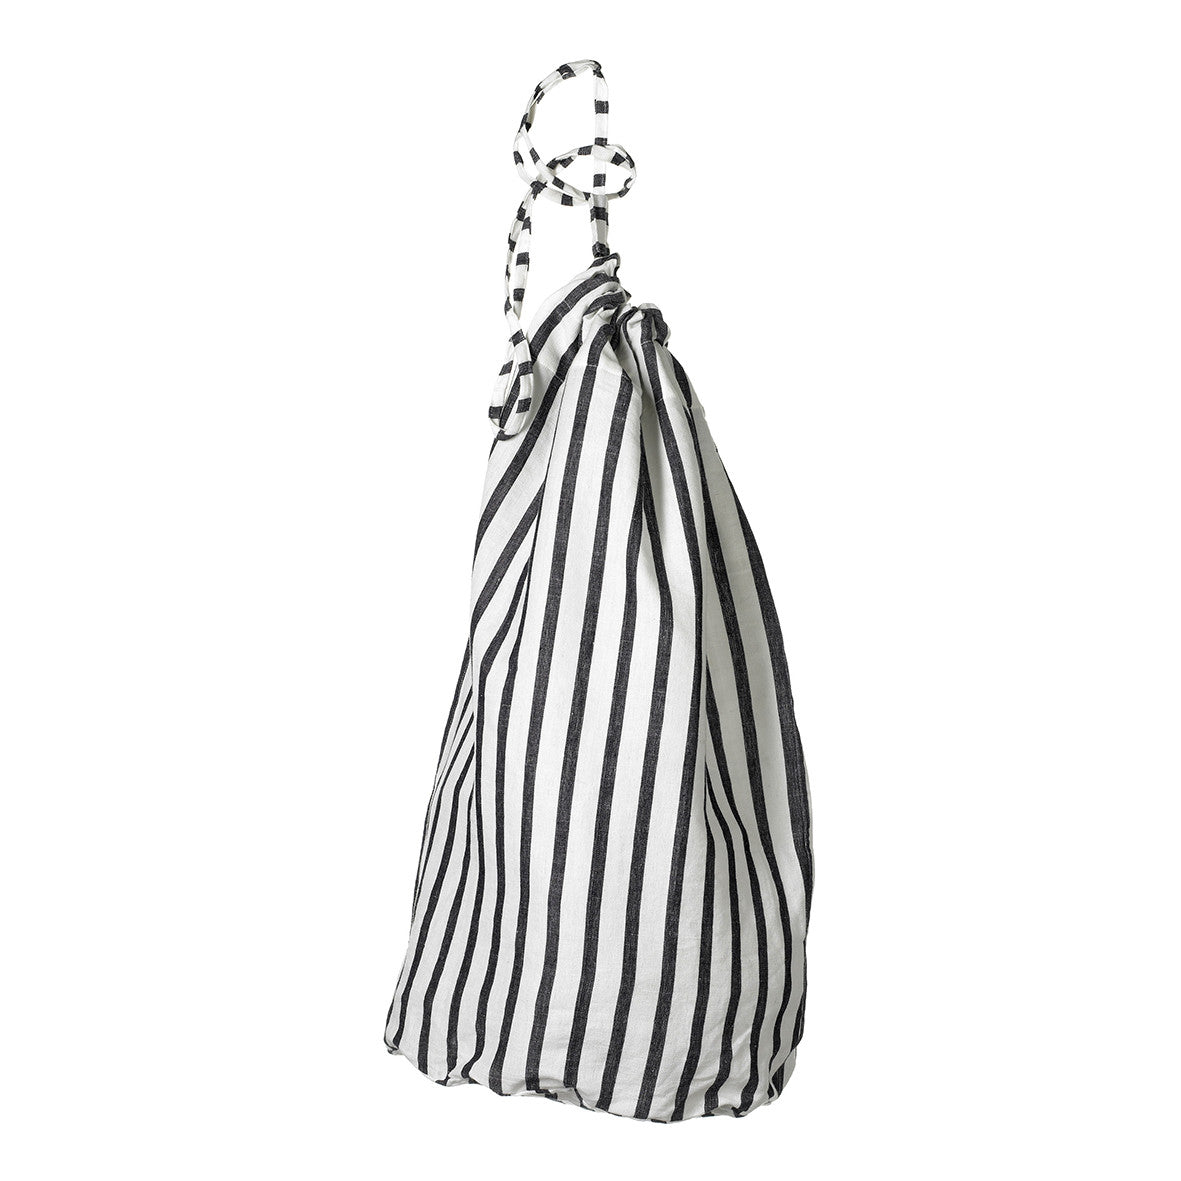 Autumn Ticking Stripe Linen Laundry and Storage Bags in Black ships from Canada (USA)